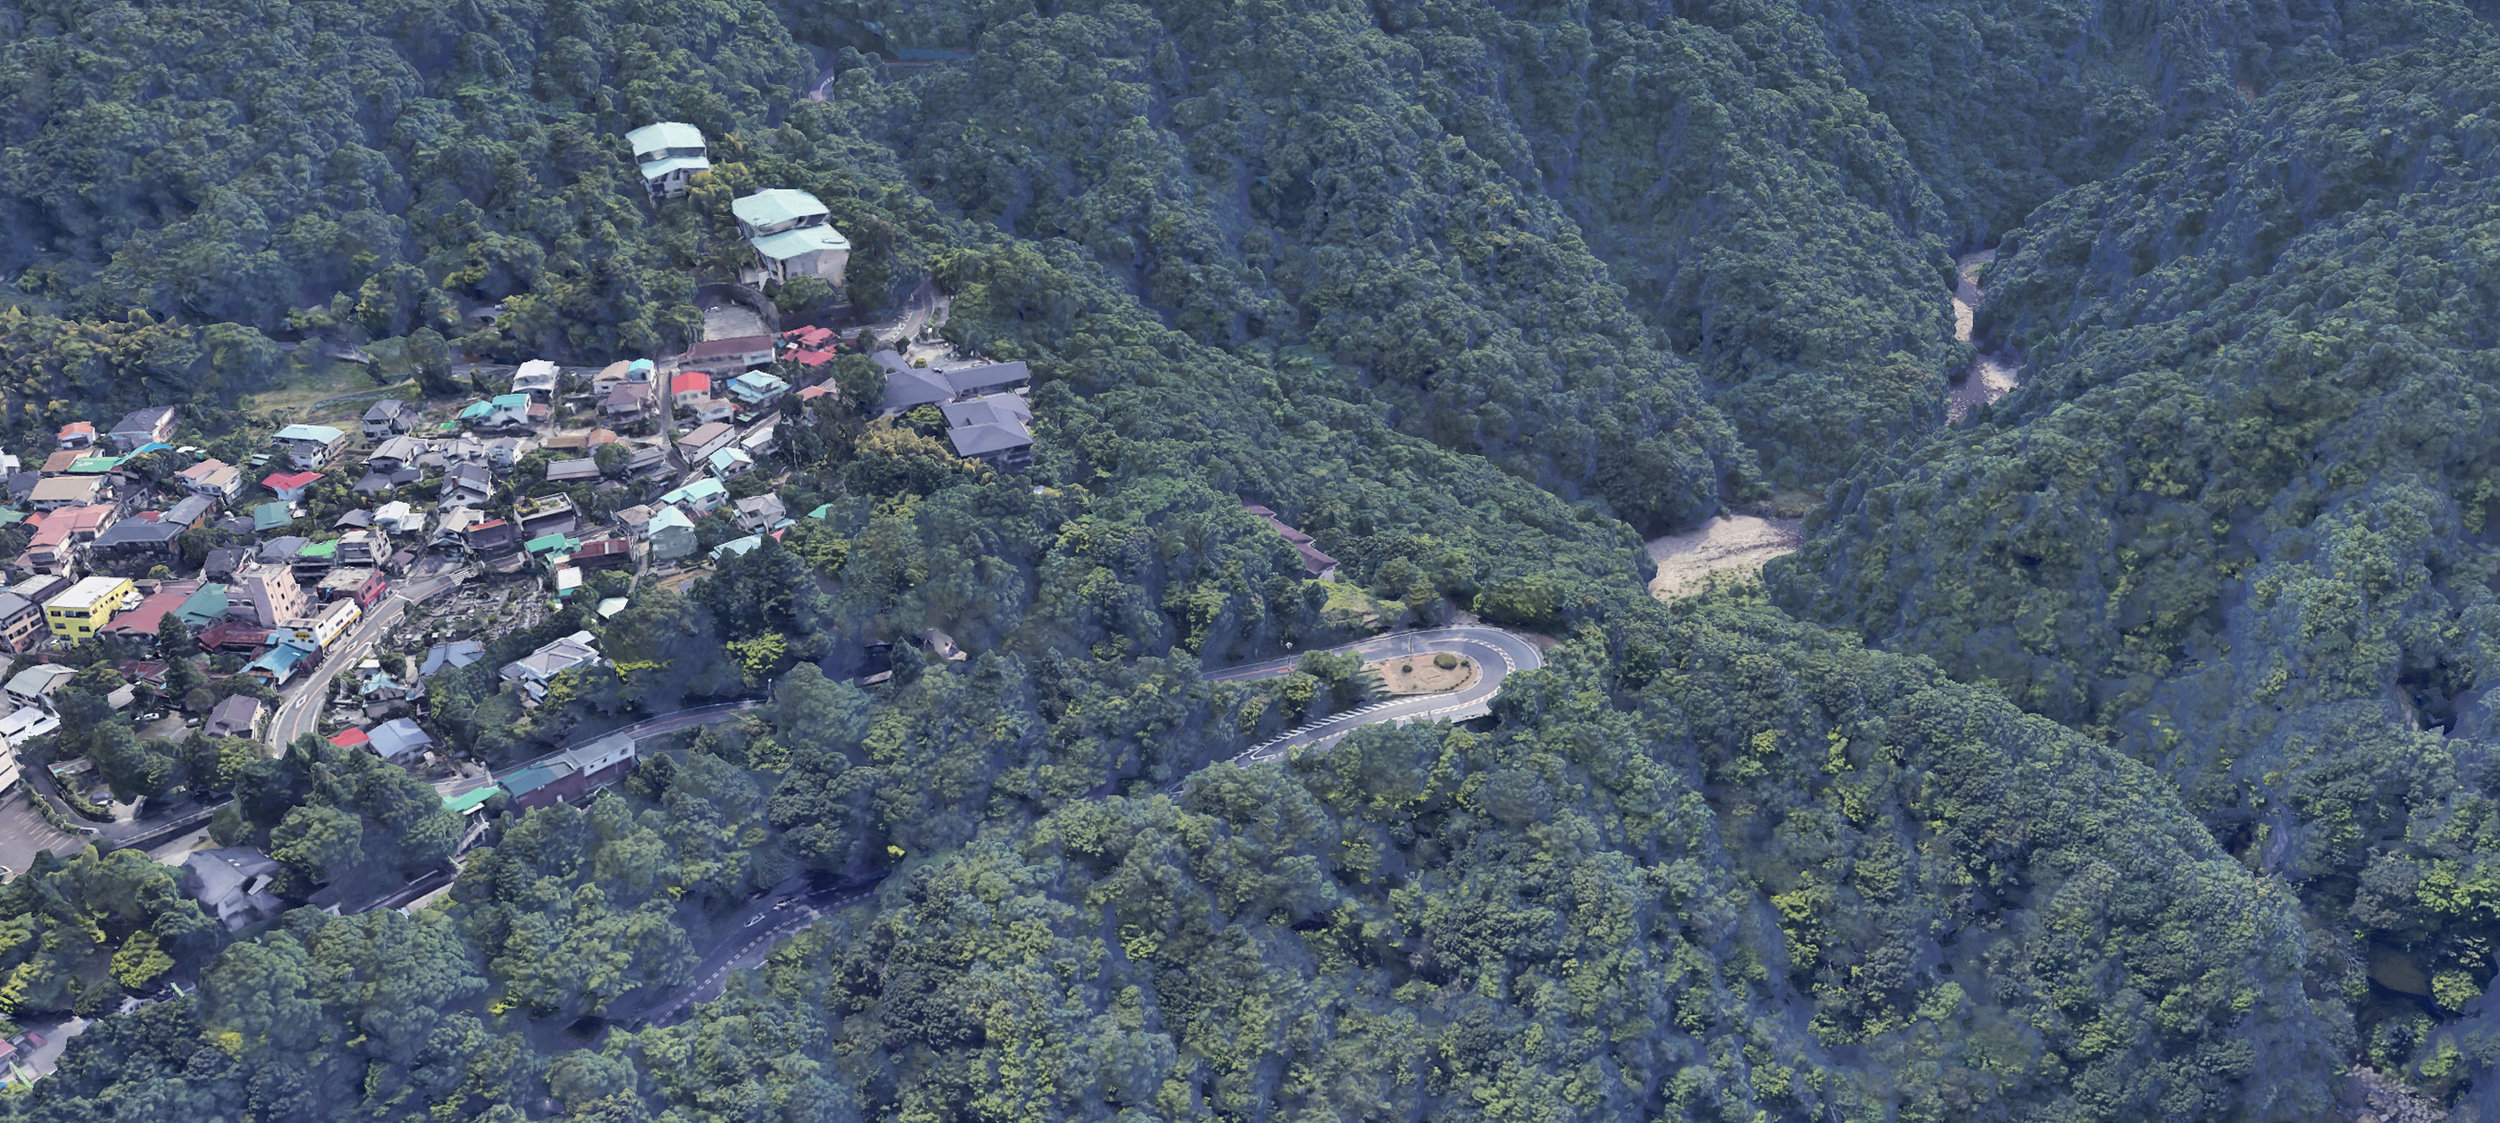 A Google Earth view of Hakone. This image was my eventual inspiration for the background of the piece.